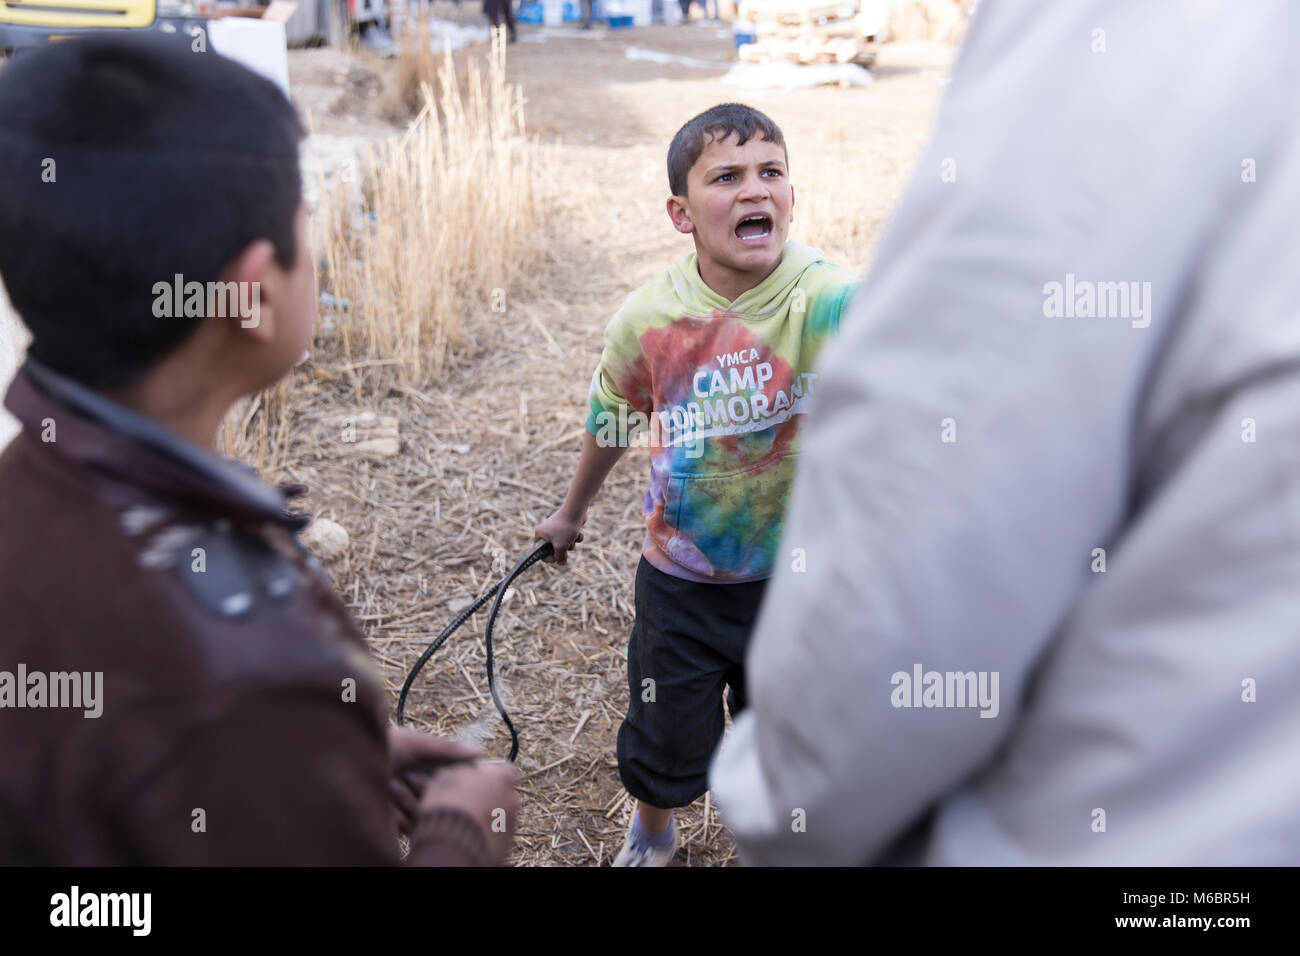 Mosul, Iraq. 8th December 2016 - A boy fights off tries to whip a man with a tyre tube to trying to steal aid during a United Nations distribution Stock Photo